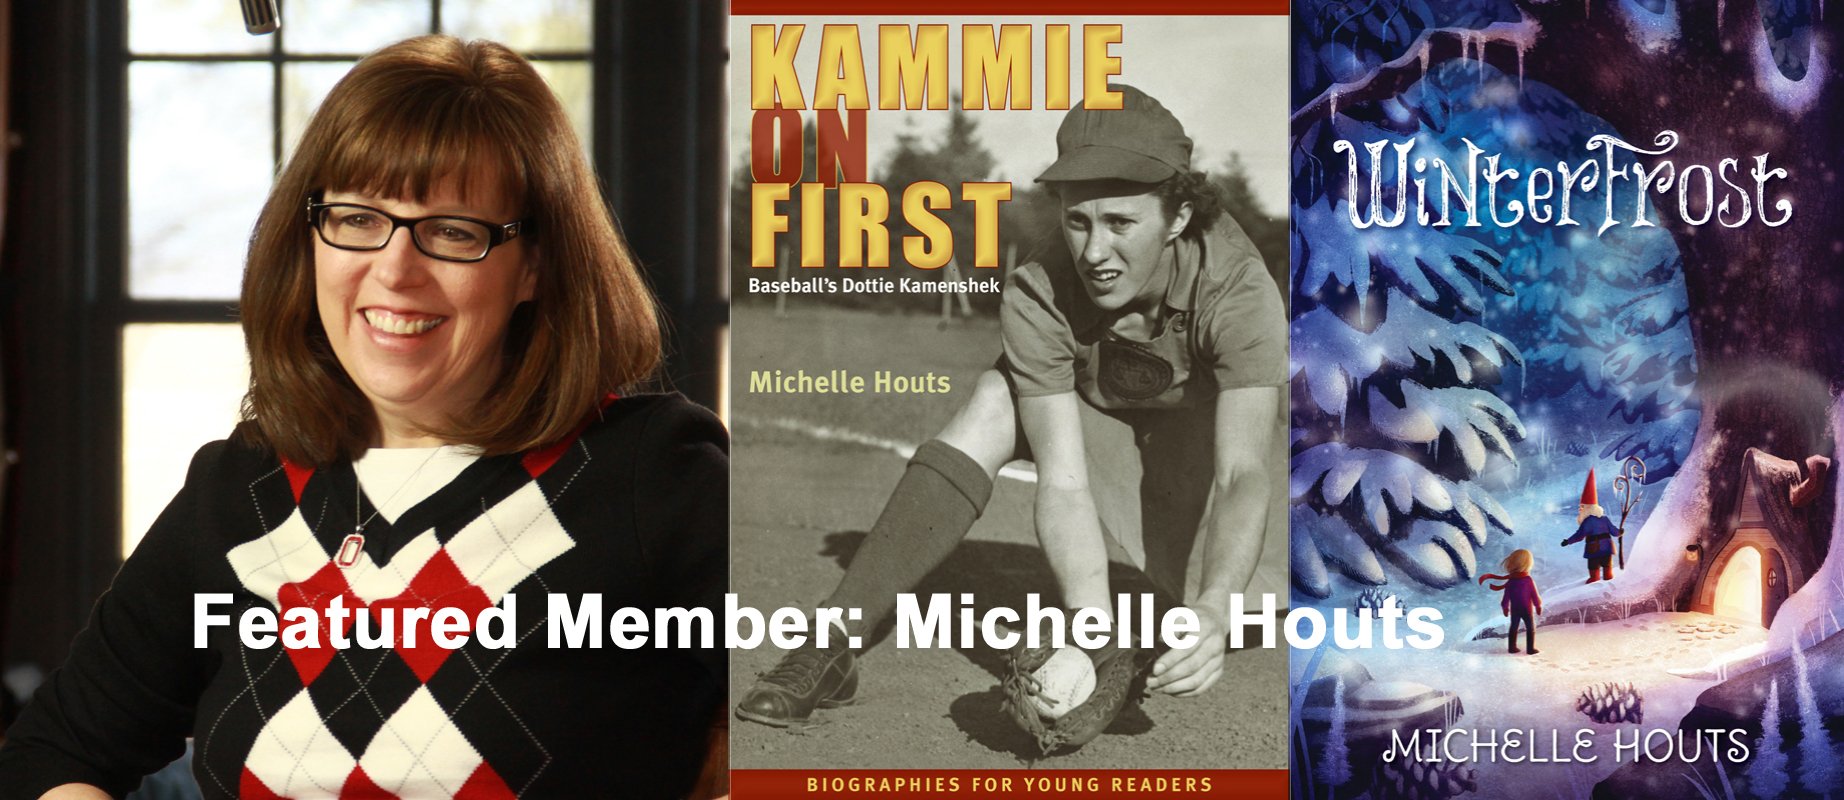 Michelle Houts – Award-Winning Author Award-winning author Michelle Houts lives and plays on a family farm in Ohio with her three children, the farmer of her dreams, some cattle, hogs, a whole lot of barn cats, a few goats and a dog named Hercules. She enjoys reading, cooking and hiking any place that has hills because it is very flat where she lives. She is the author of four books for middle-grade readers. Her first book, The Beef Princess of Practical County (Random House, 2009) won the 2010 International Reading Association Children's Book Award and the 2011 Nebraska Farm Bureau Children's Ag Book of the Year. The sequel, The Practical County Drama Queen, was published just his year. Also this year, Winterfrost was released by Candlewick Press. It is a Junior Library Guild selection for Fall 2014. And, most recently, Michelle tried her hand at non-fiction, and the result is the first in a series of Biographies for Young Readers, titled Kammie on First: Baseball's Dottie Kamenshek. Michelle's next two books will be picture books, expected to be released in 2015 and 2016. Michelle credits her membership in SCBWI for much of her success. She first attended the Winter Conference in New York City in 2004, where she listened and learned all she could about crafting a great story, submitting, and learning the business of writing for children. Three years later, she had her first contract. Michelle is currently restoring an 1894 one-room schoolhouse in northwest Ohio, where she hopes someday to write and to have a cat, which she'll name Miss Beadle.